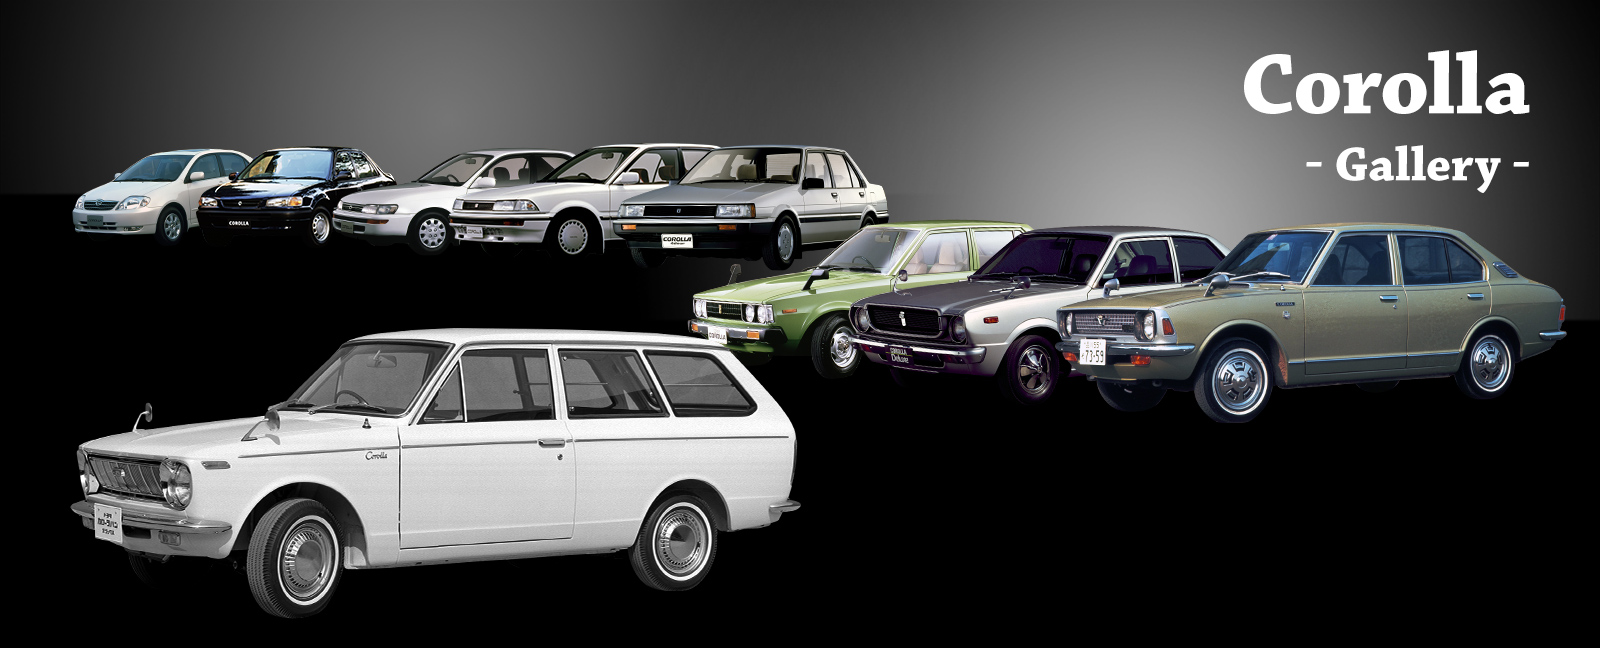 Toyota Corolla gallery.png